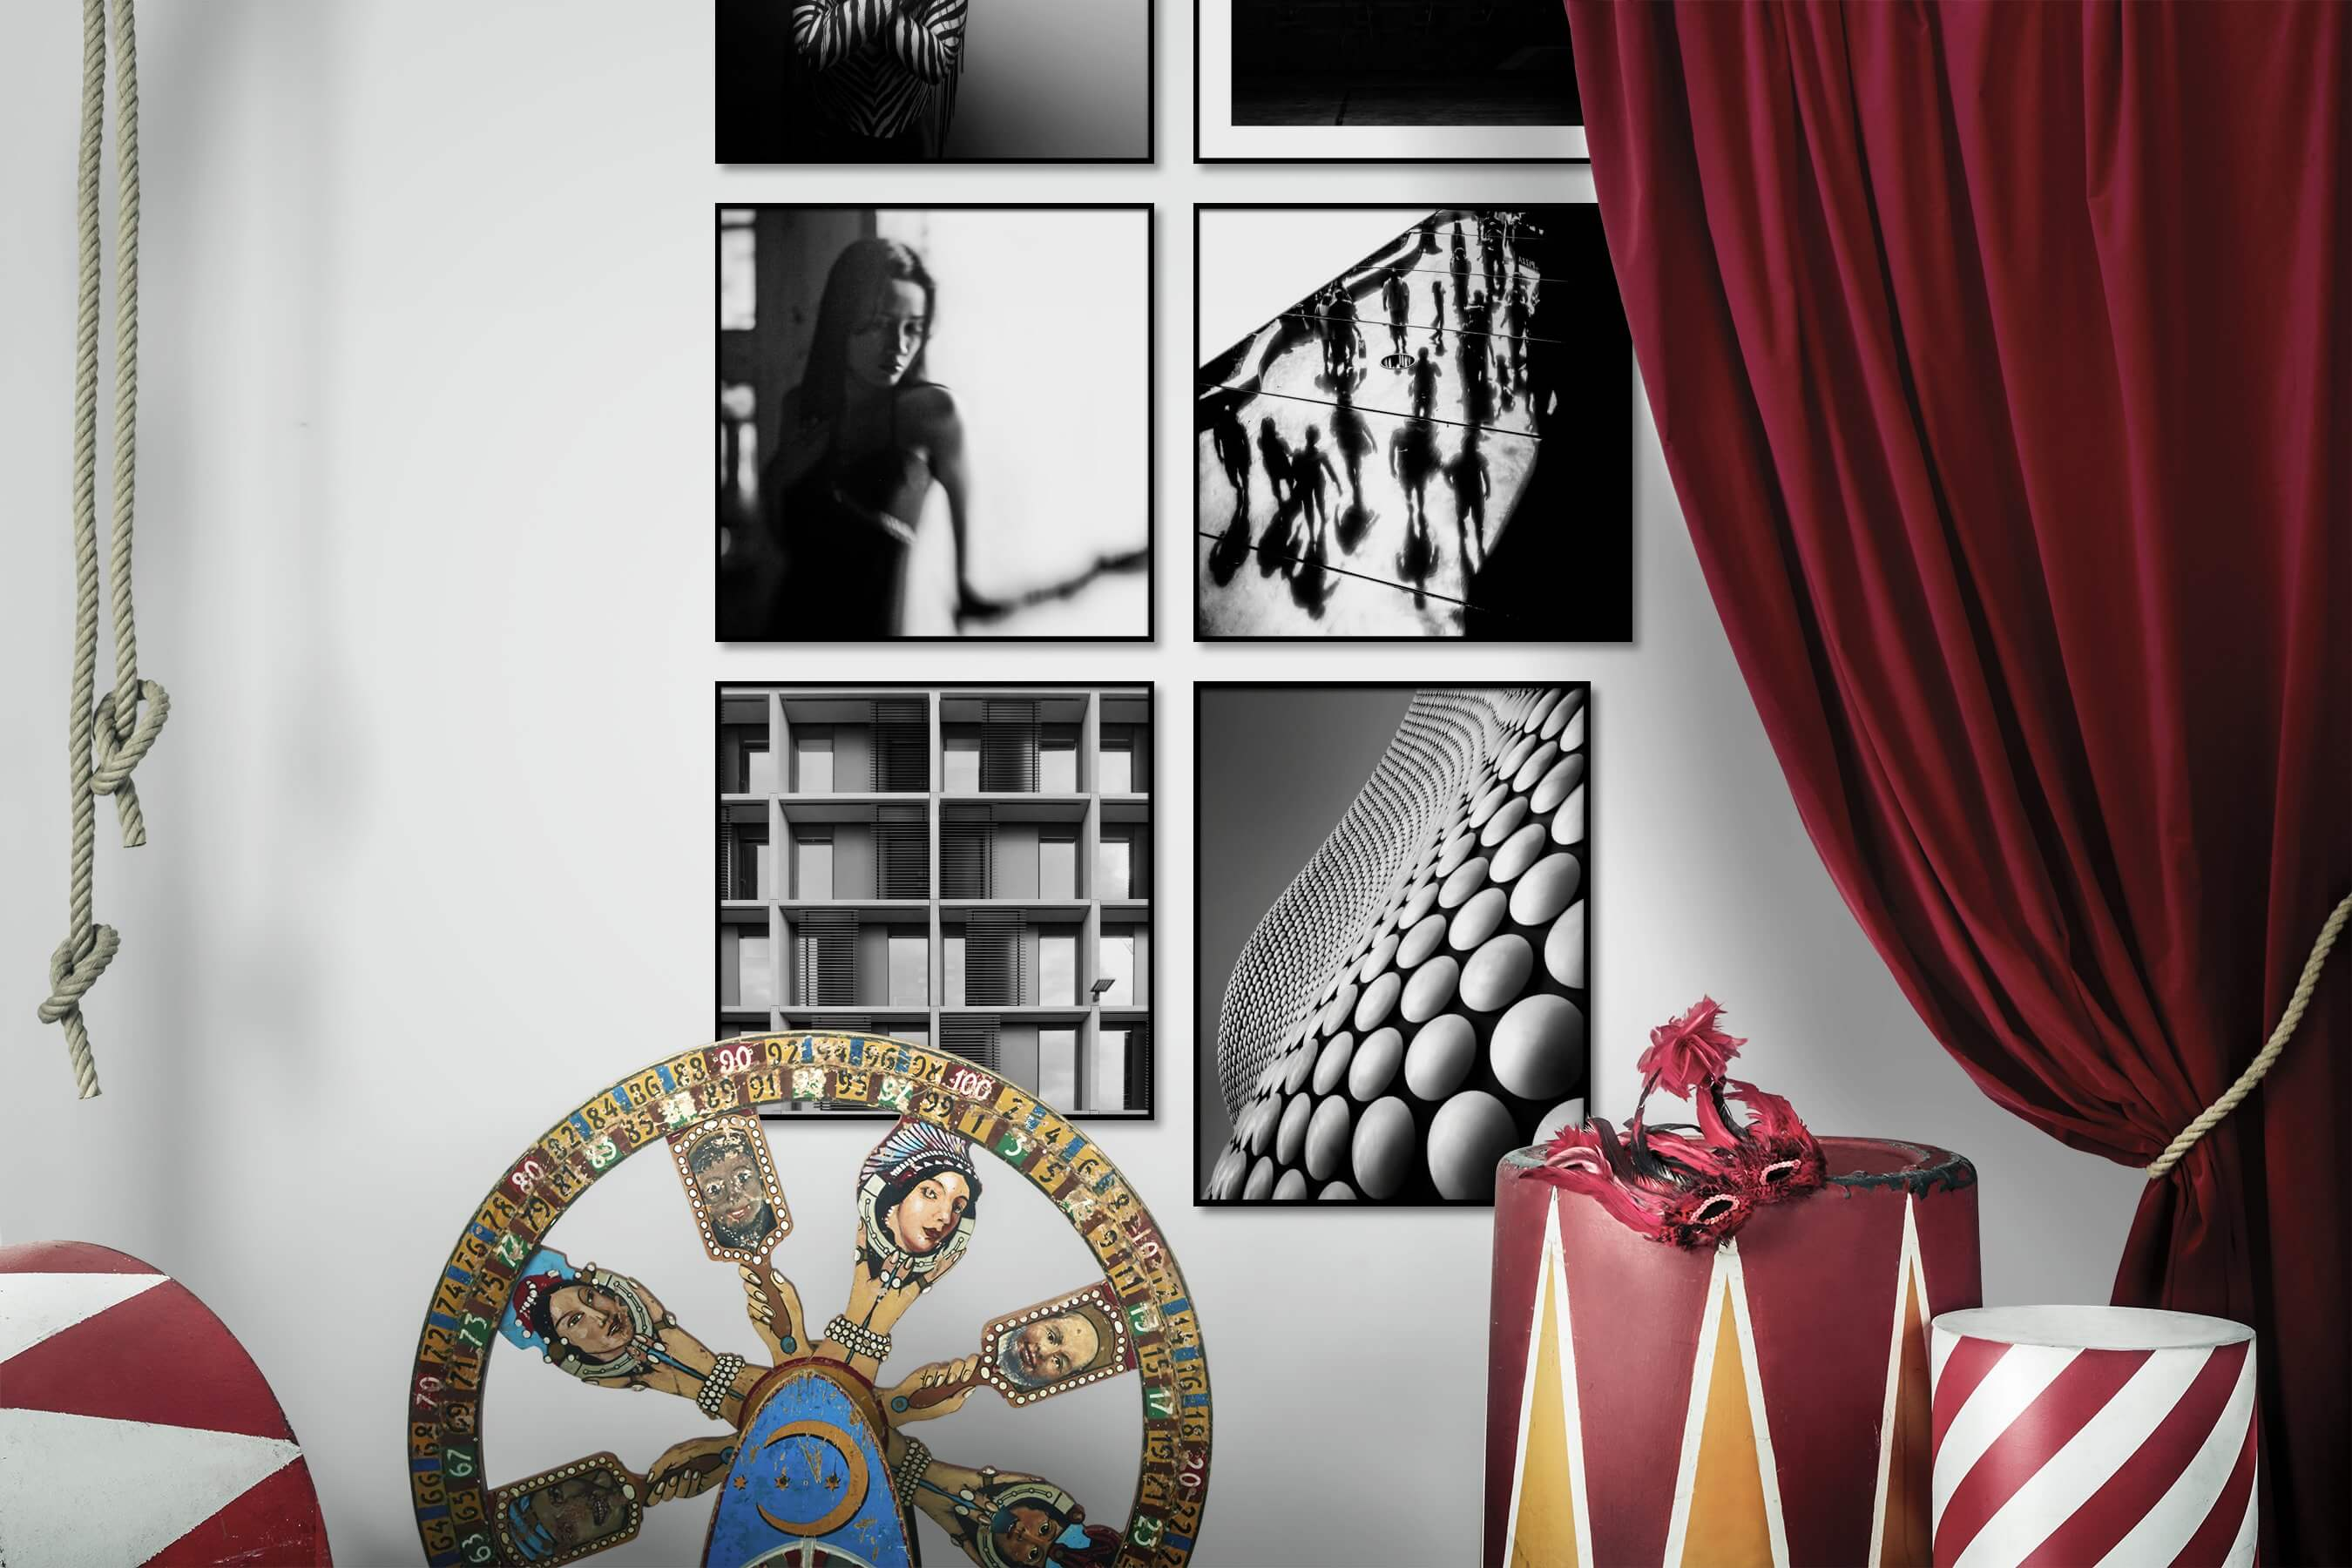 Gallery wall idea with six framed pictures arranged on a wall depicting Fashion & Beauty, Black & White, For the Minimalist, For the Moderate, City Life, and For the Maximalist